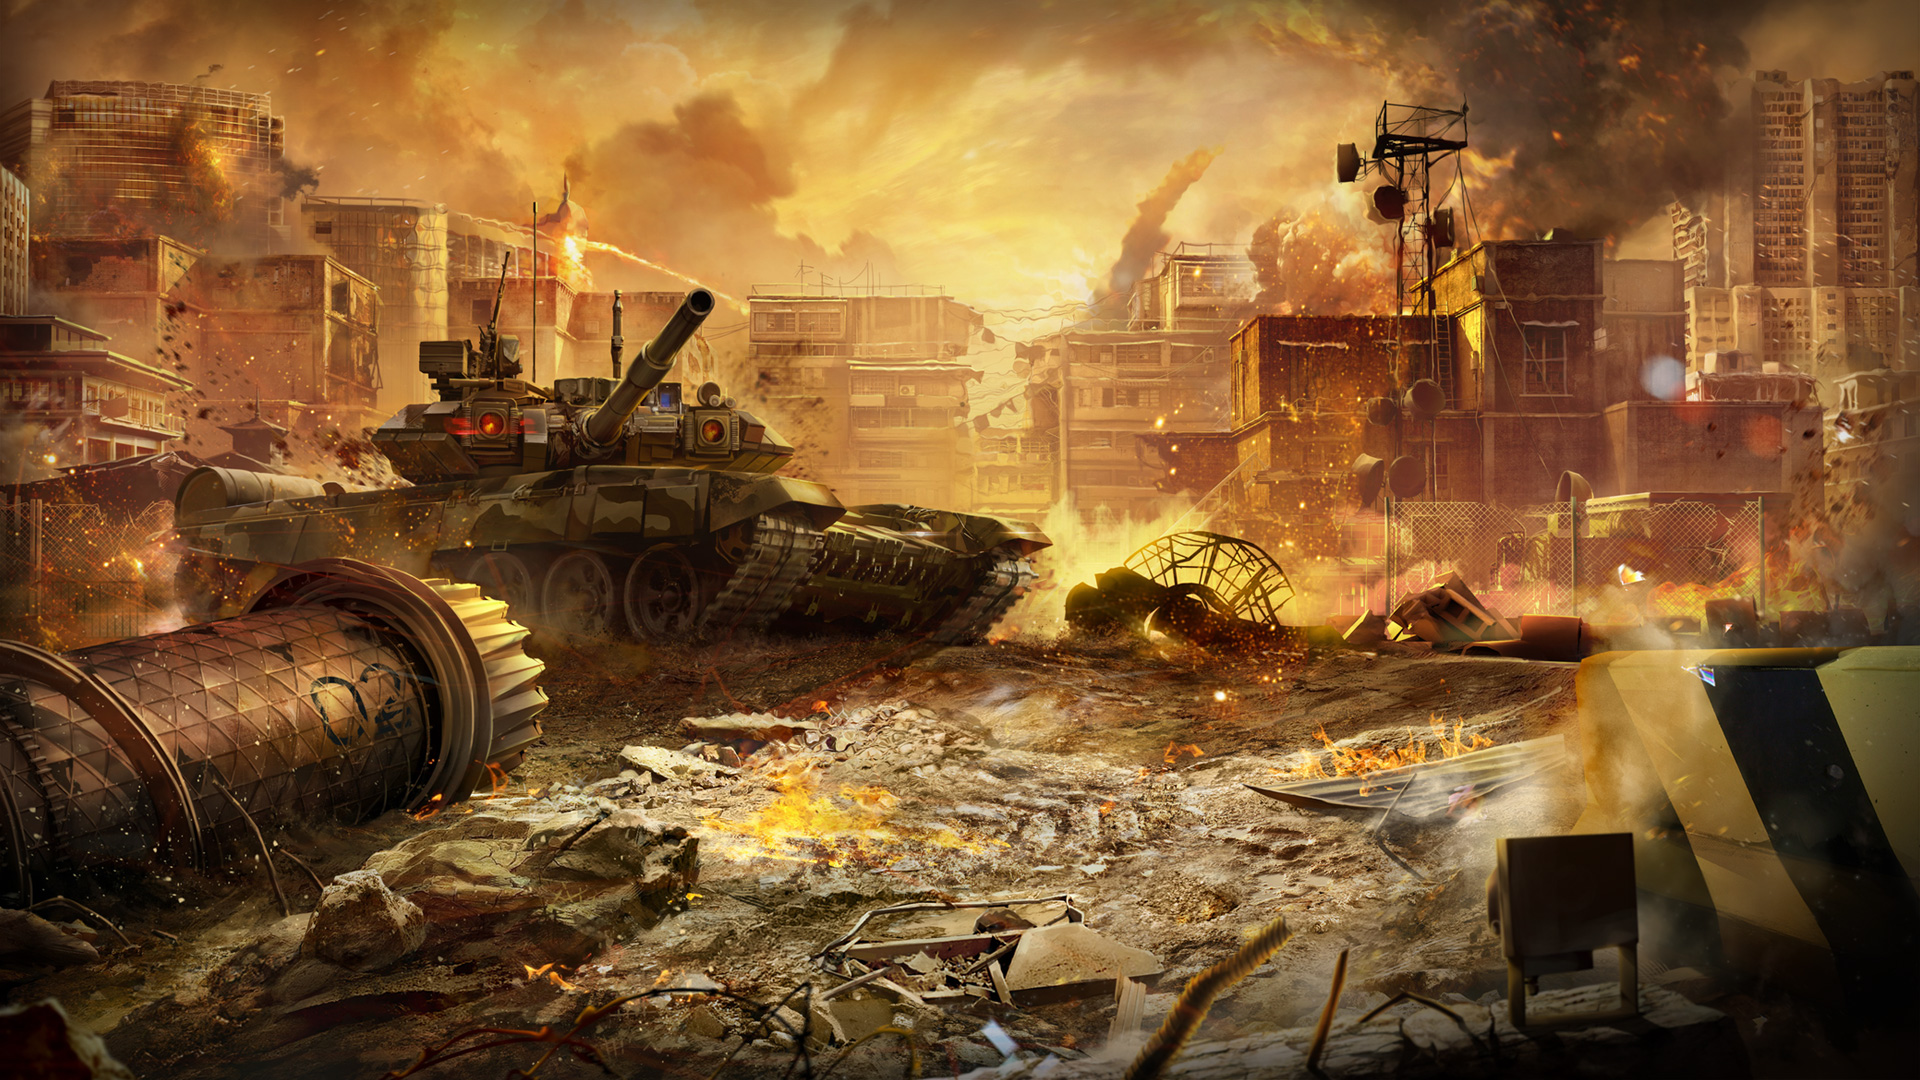 Calendar Wallpaper June : Armored warfare september calendar